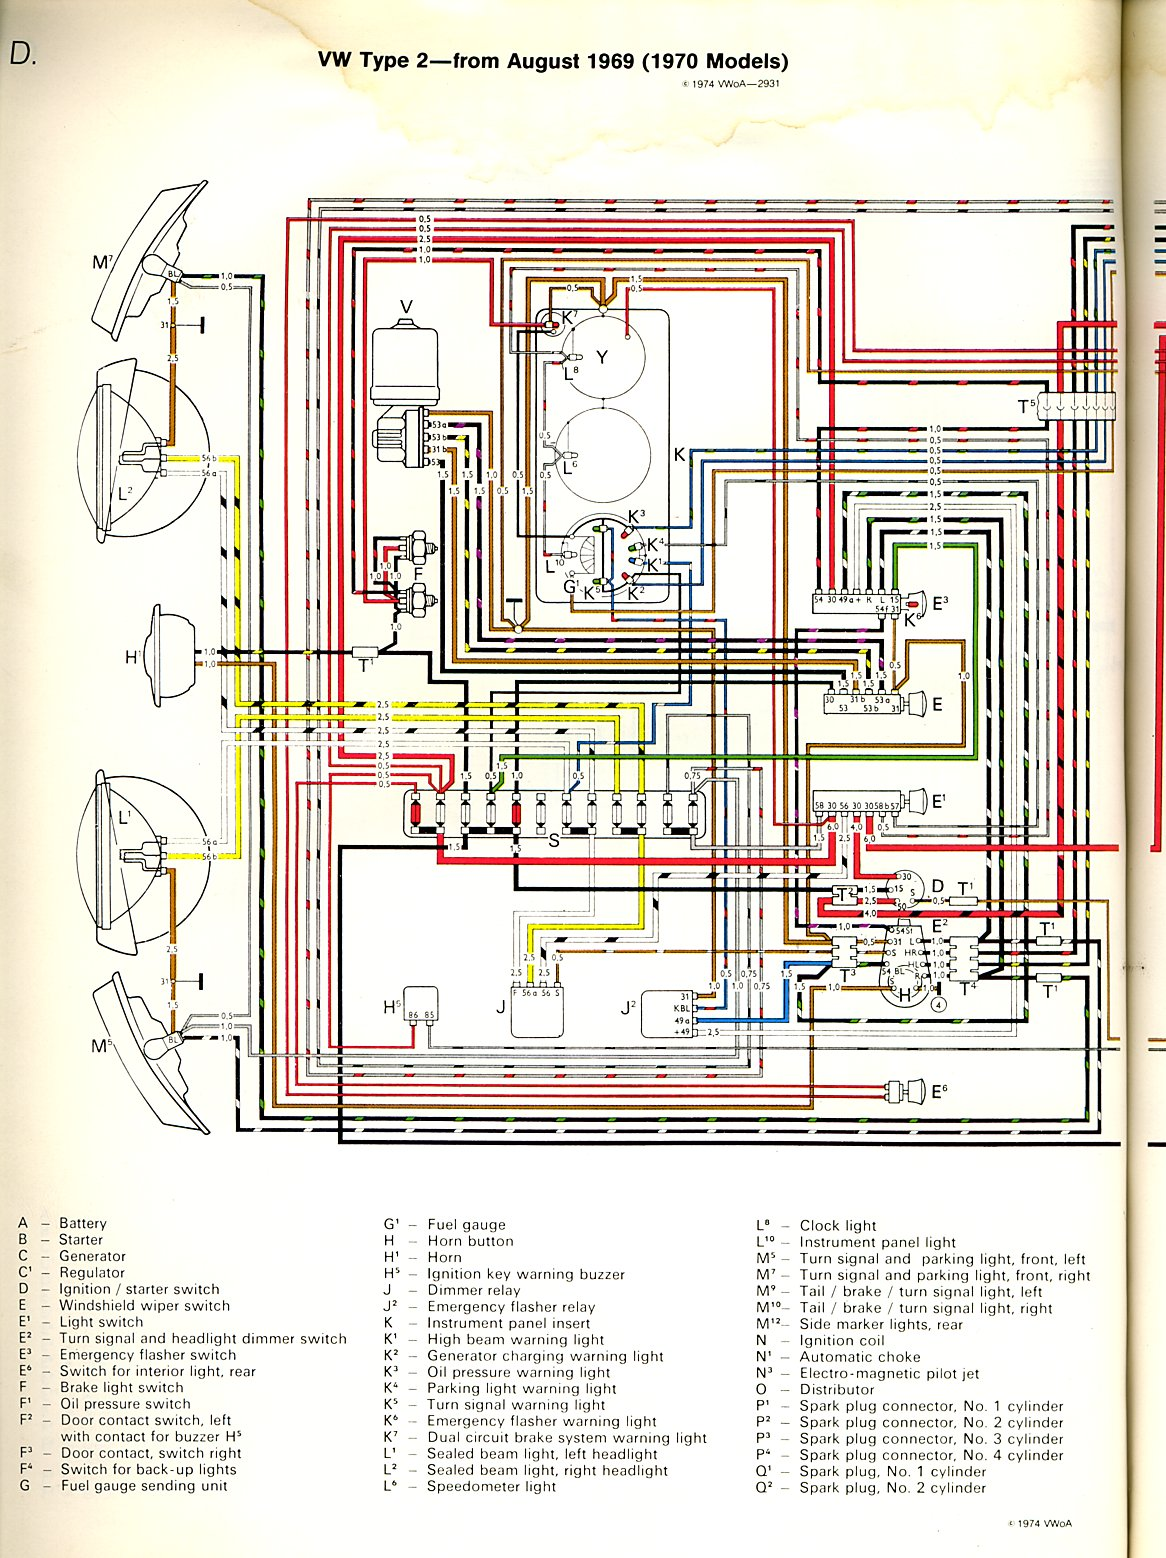 baybus_70a thesamba com type 2 wiring diagrams vw t5 rear light wiring diagram at reclaimingppi.co